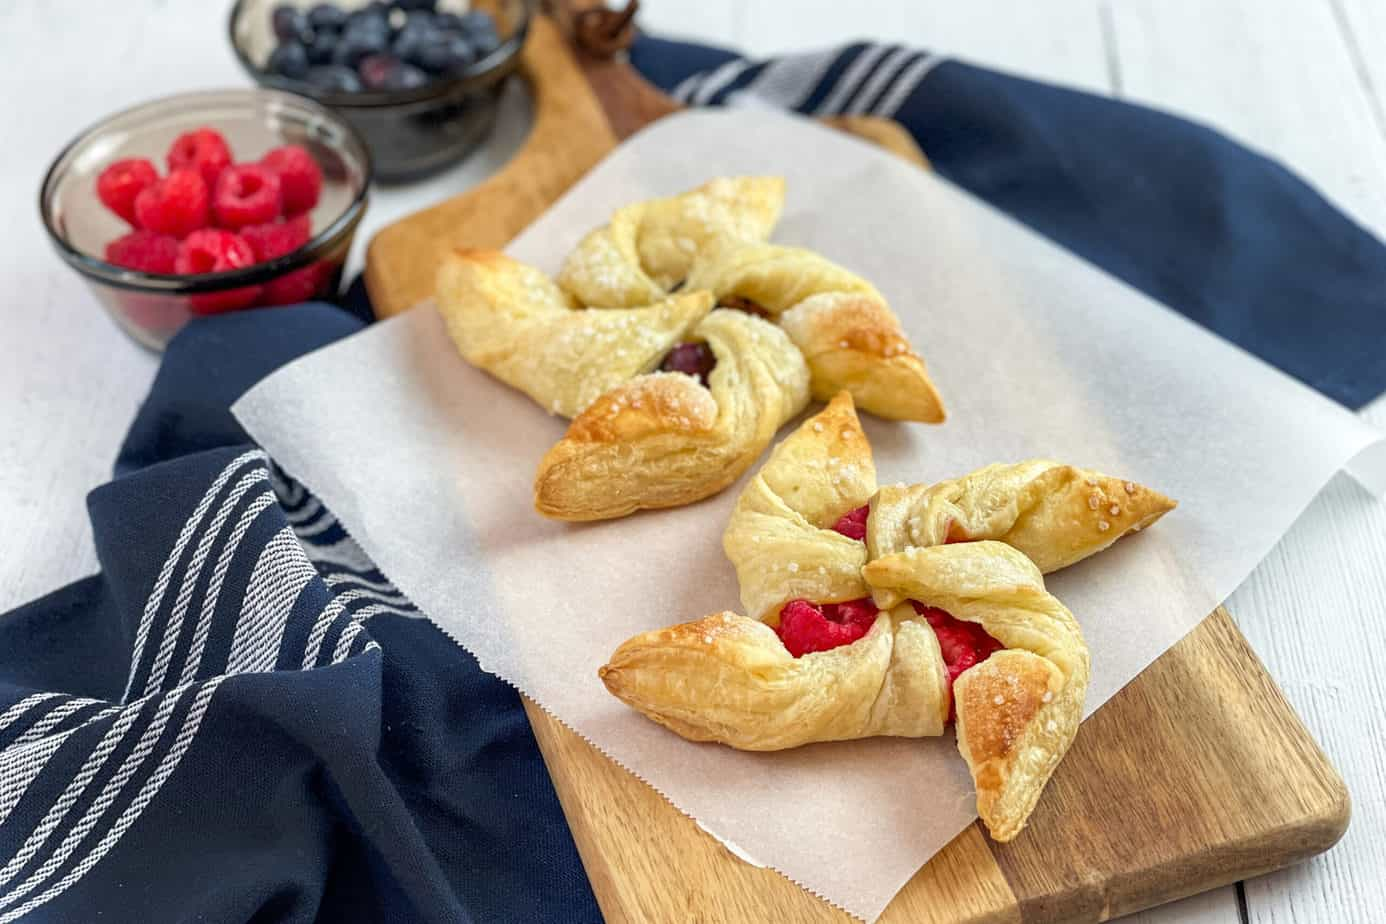 Two berry pinwheel pastries on a sheet of parchment paper with fresh raspberries and blueberries